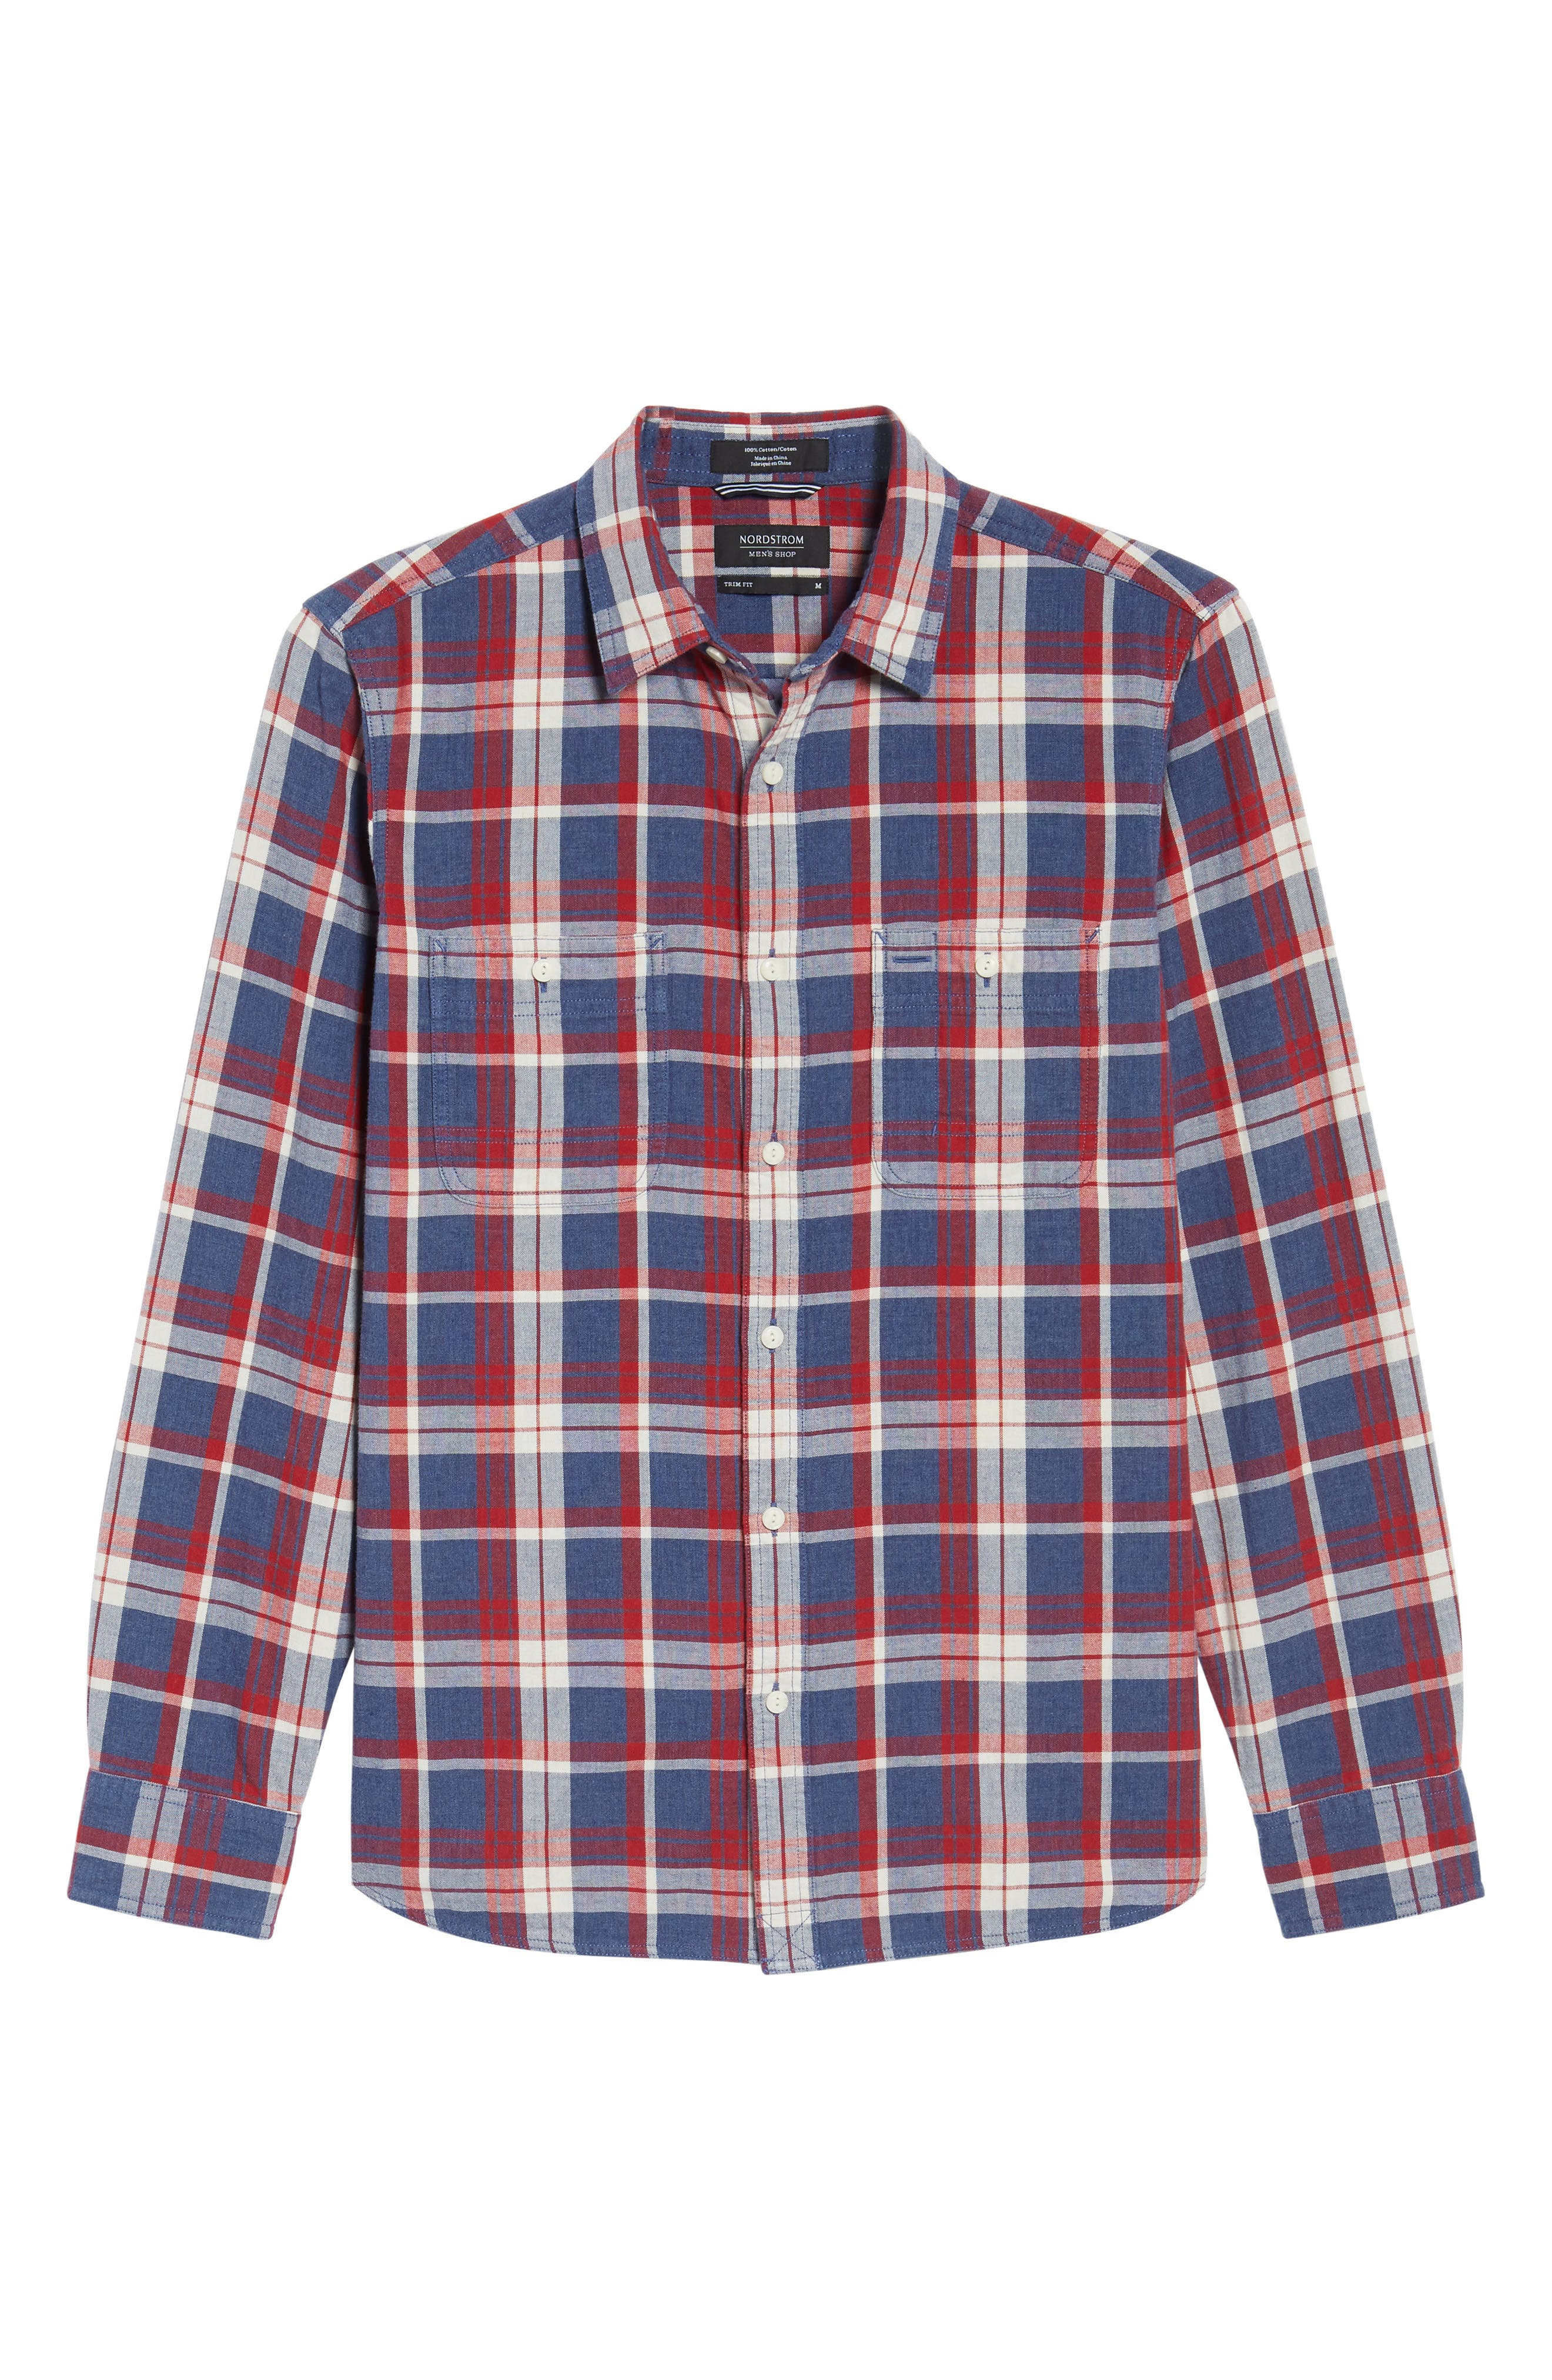 Trim Fit Workwear Duofold Plaid Sport Shirt,                             Alternate thumbnail 6, color,                             Blue Ensign Red Plaid Duofold